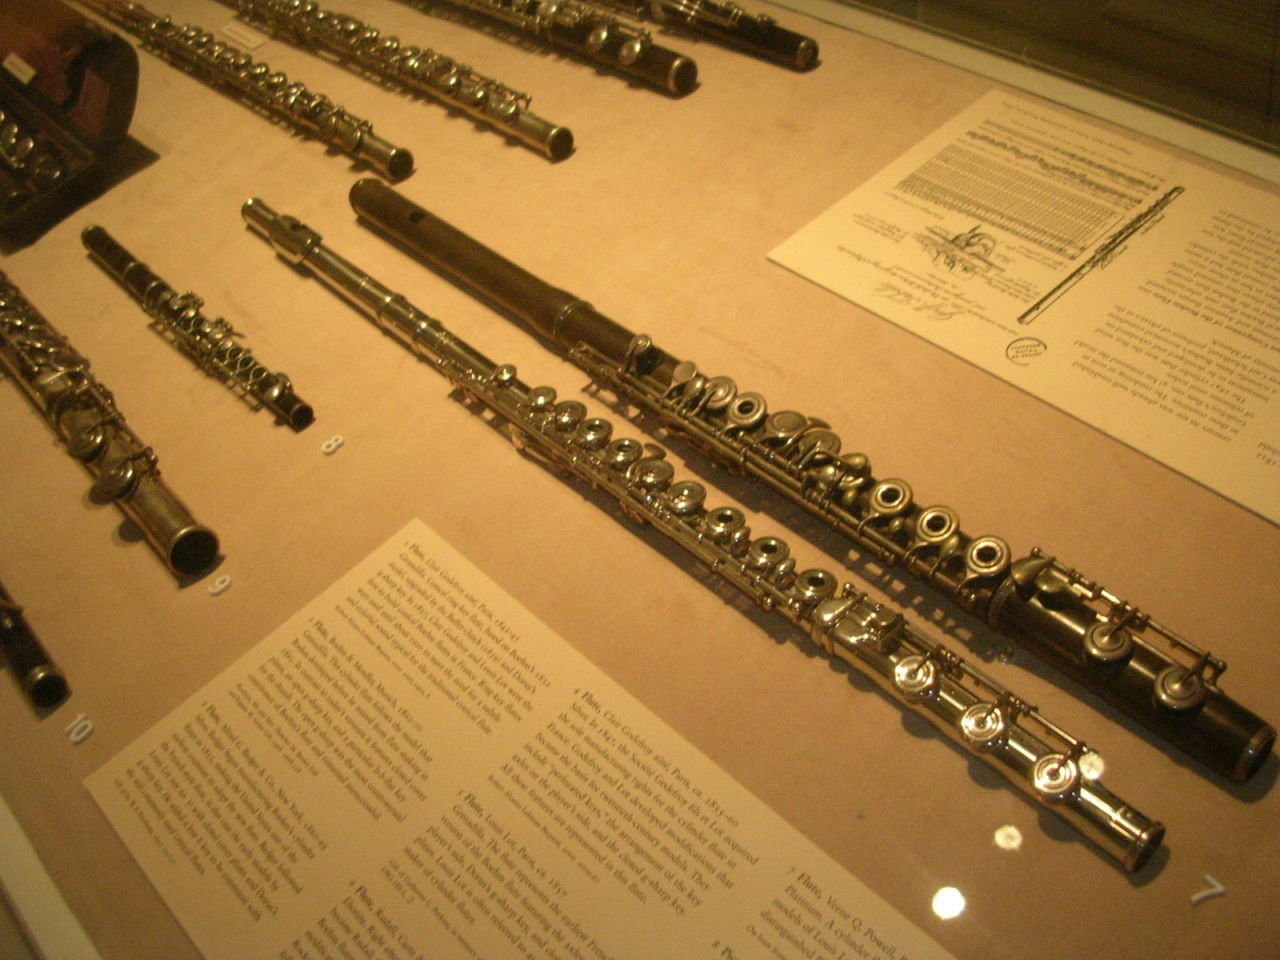 Powell Number #365 is a very special flute now residing in a very famous place. Find out more in the latest post on our Flute Builder blog at http://www.flutebuilder.com/2013/05/powell-365-platinum-flute-for-worlds.html